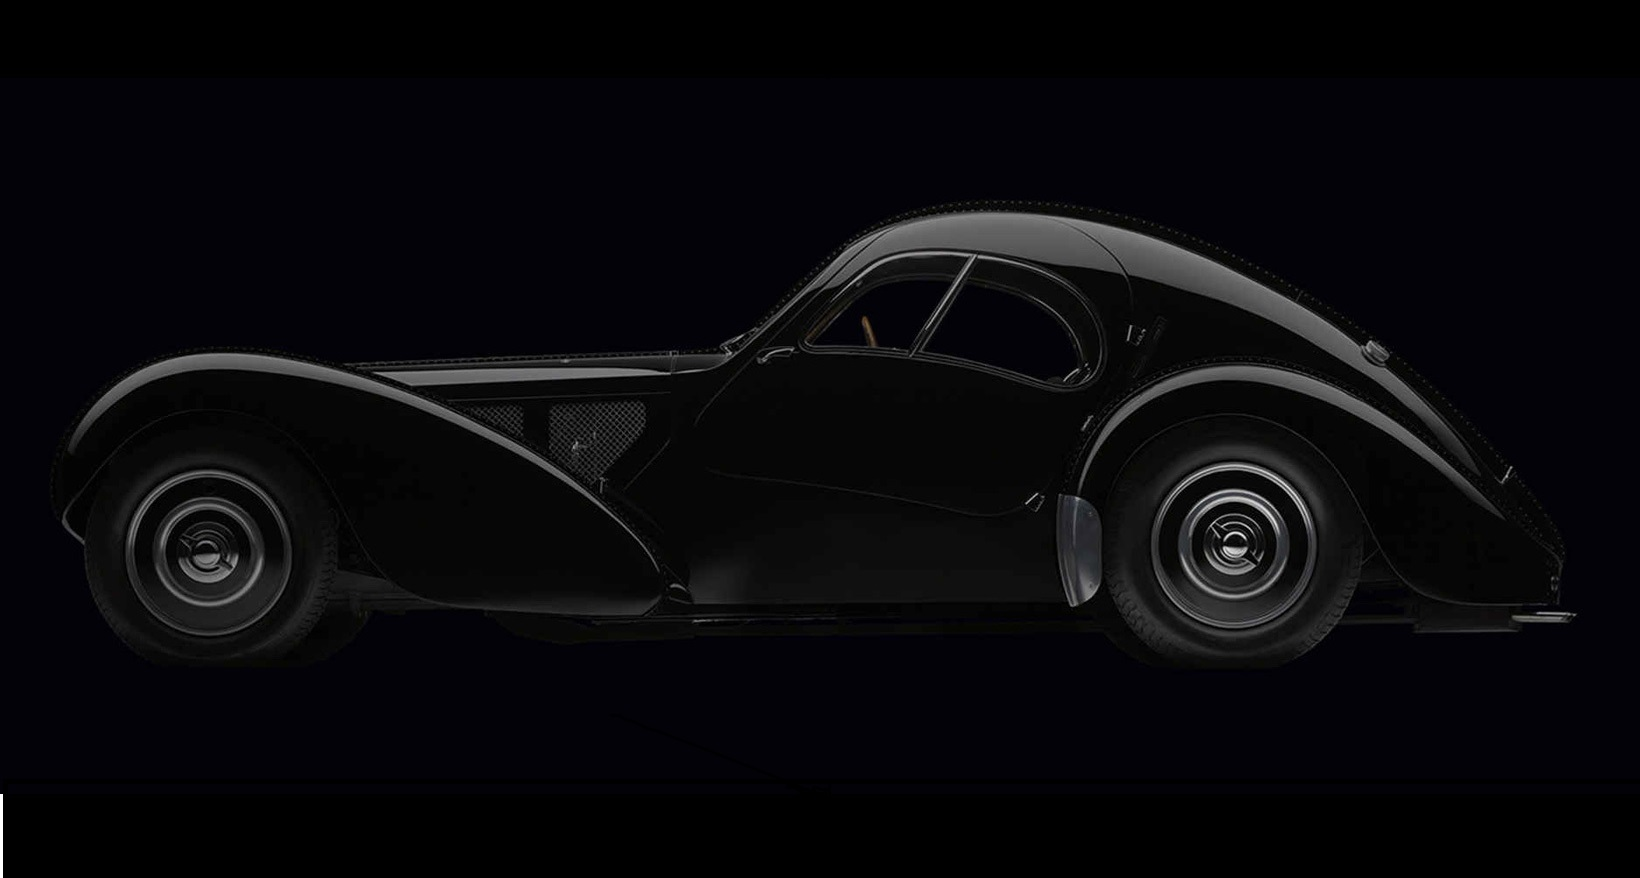 ralph-lauren-1936-bugatti-type-57sc-atlantic-coupe-1